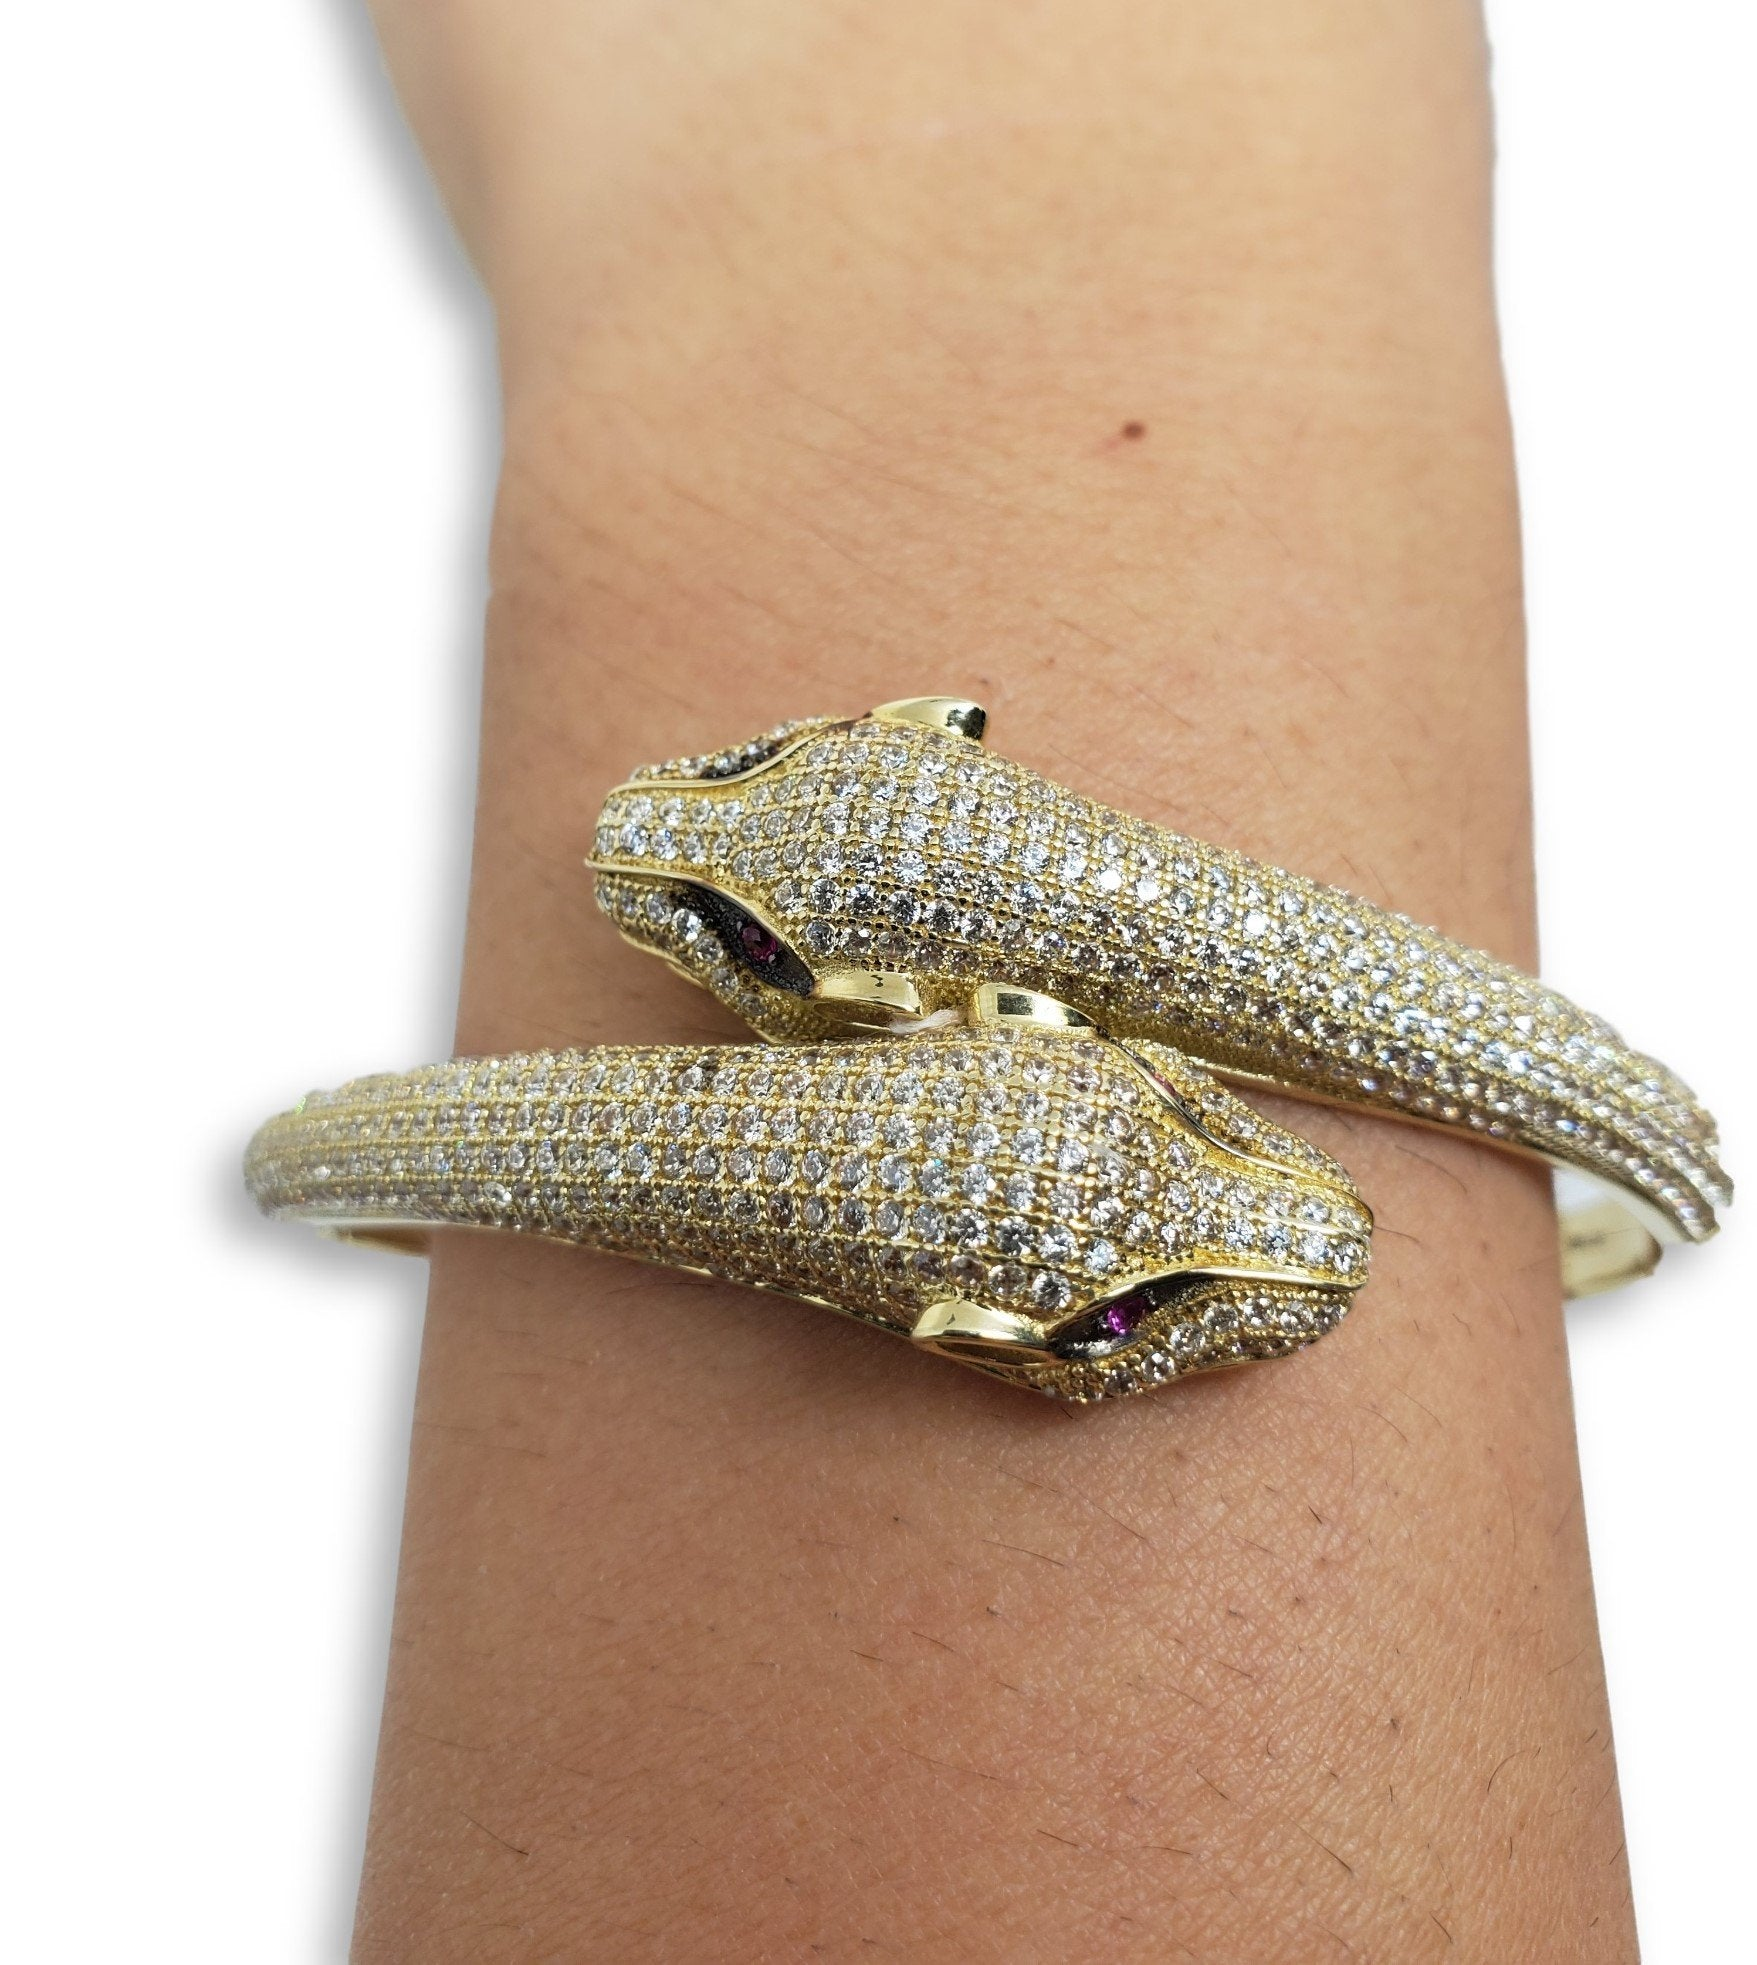 Bracelet6 en or 10K / Bangle6 in 10K gold - orquebec